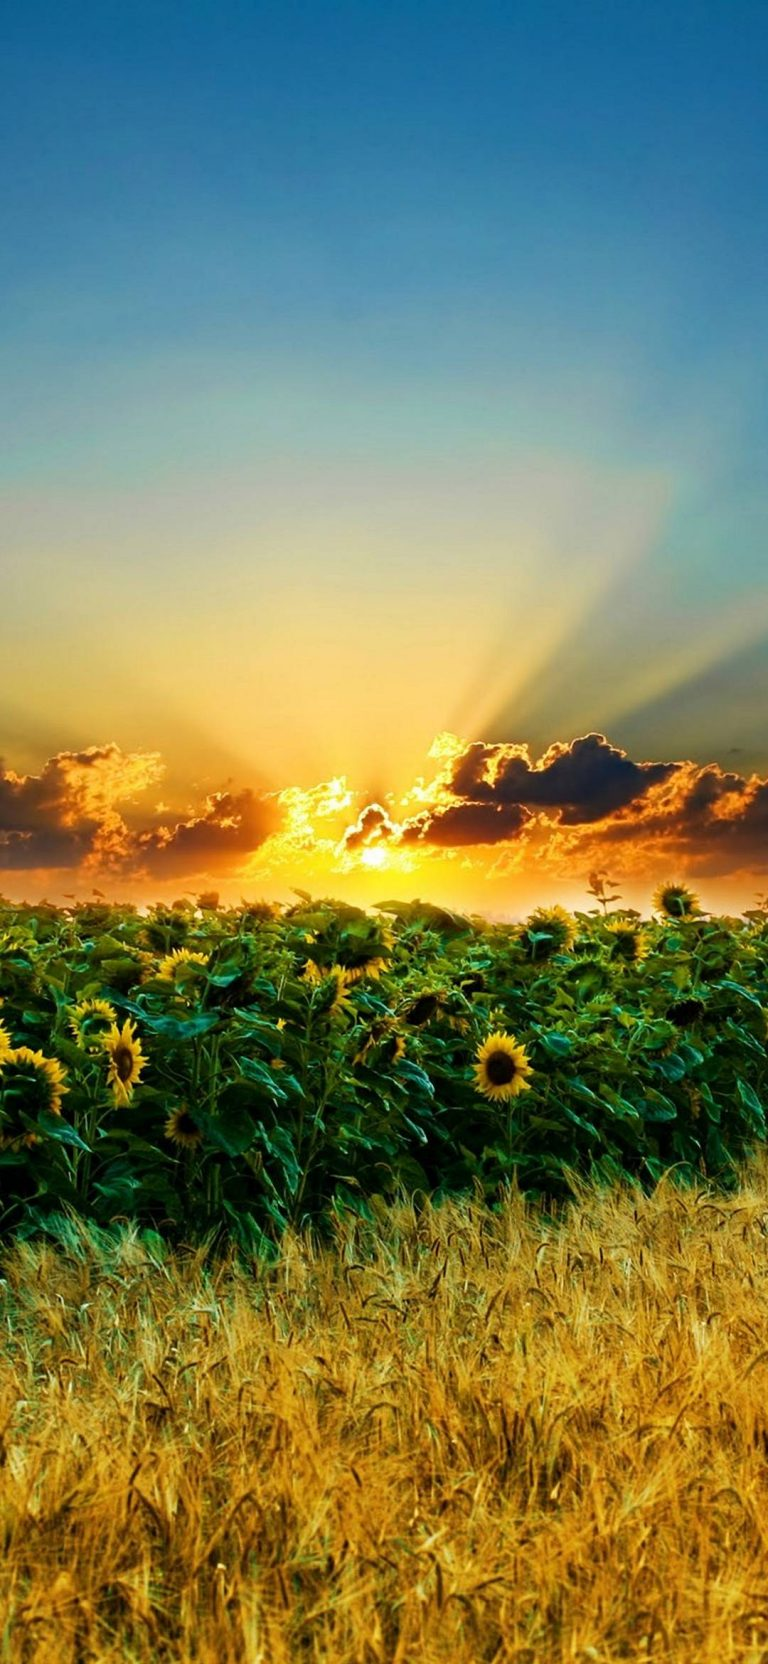 Sun Field Sunflower 1080x2340 768x1664